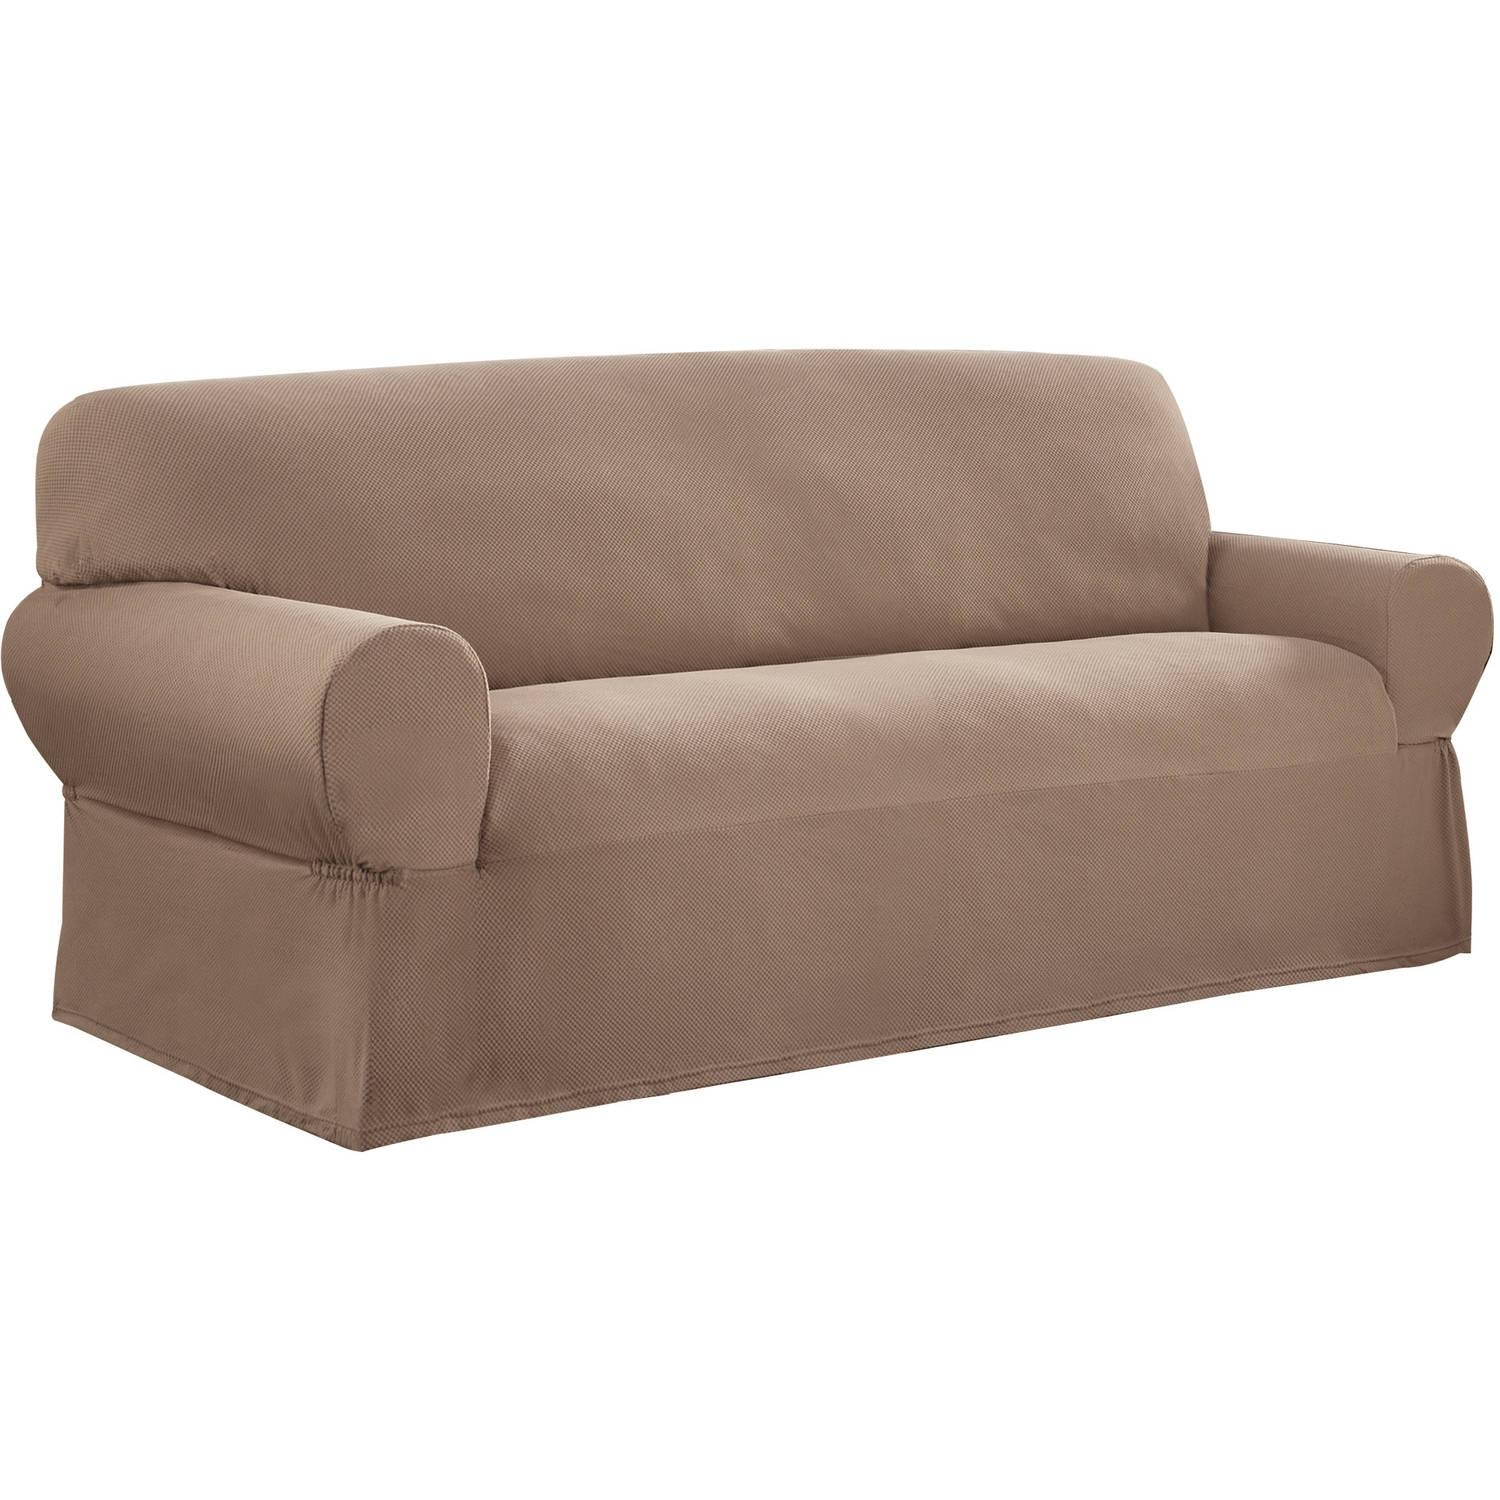 Mainstays 1 Piece Stretch Fabric Sofa Slipcover – Walmart Throughout Stretch Slipcovers For Sofas (Image 9 of 20)